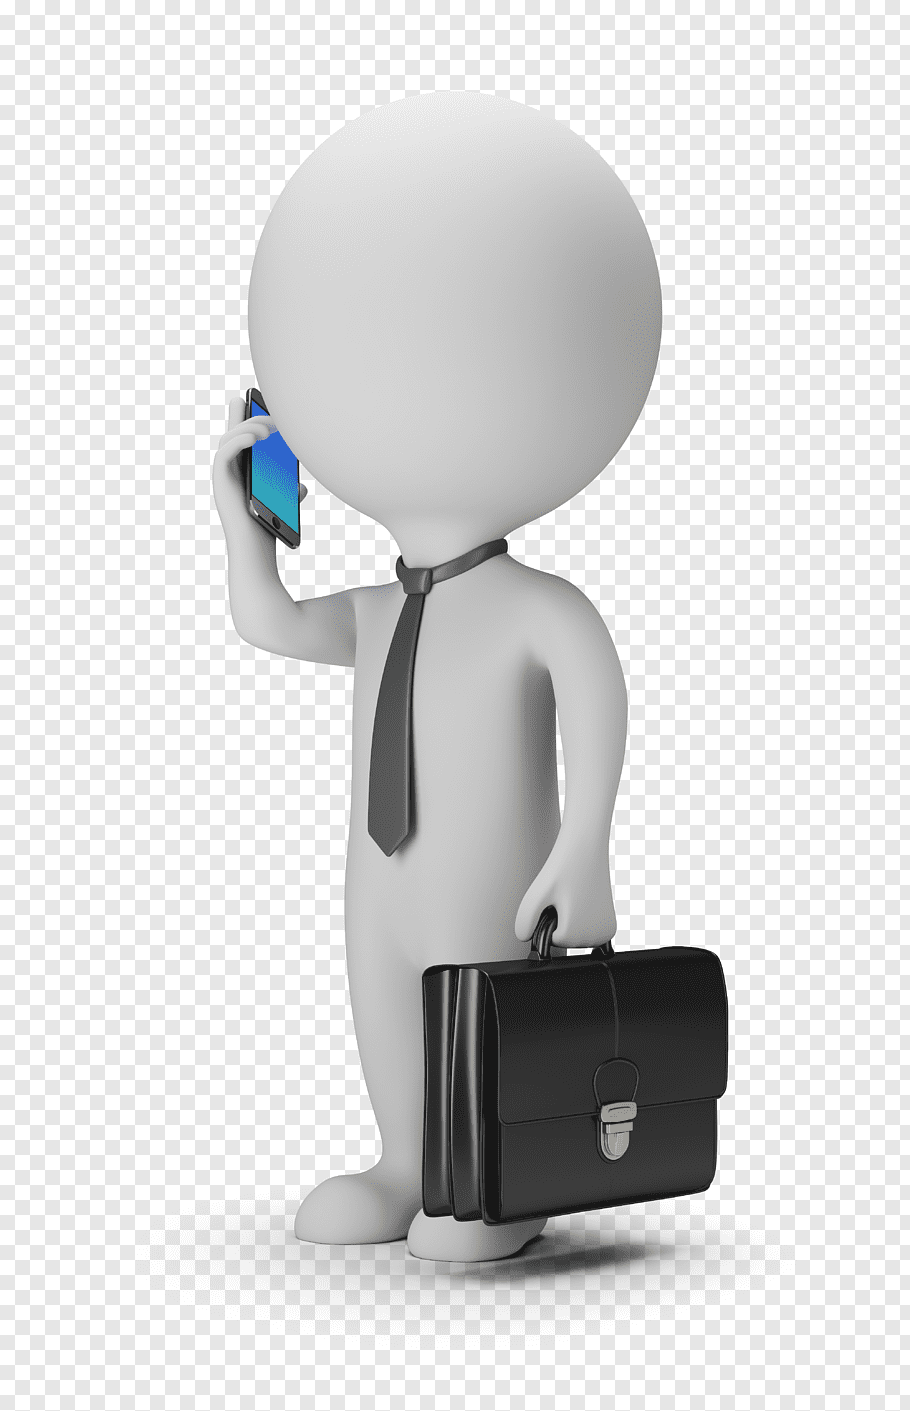 Man wearing black necktie holding smartphone and suitcase.